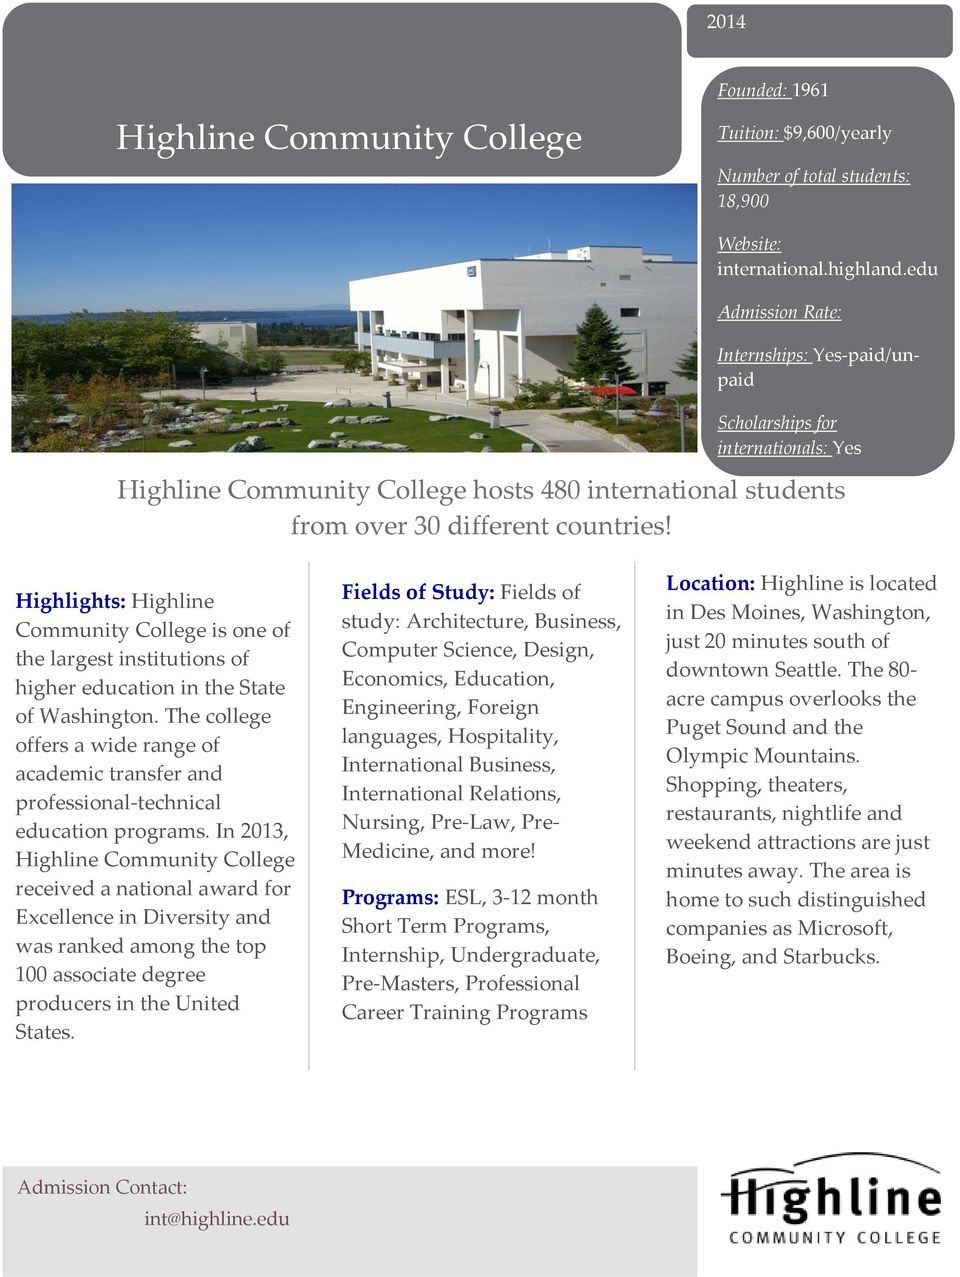 Highlights: Highline Community College is one of the largest institutions of higher education in the State of Washington.